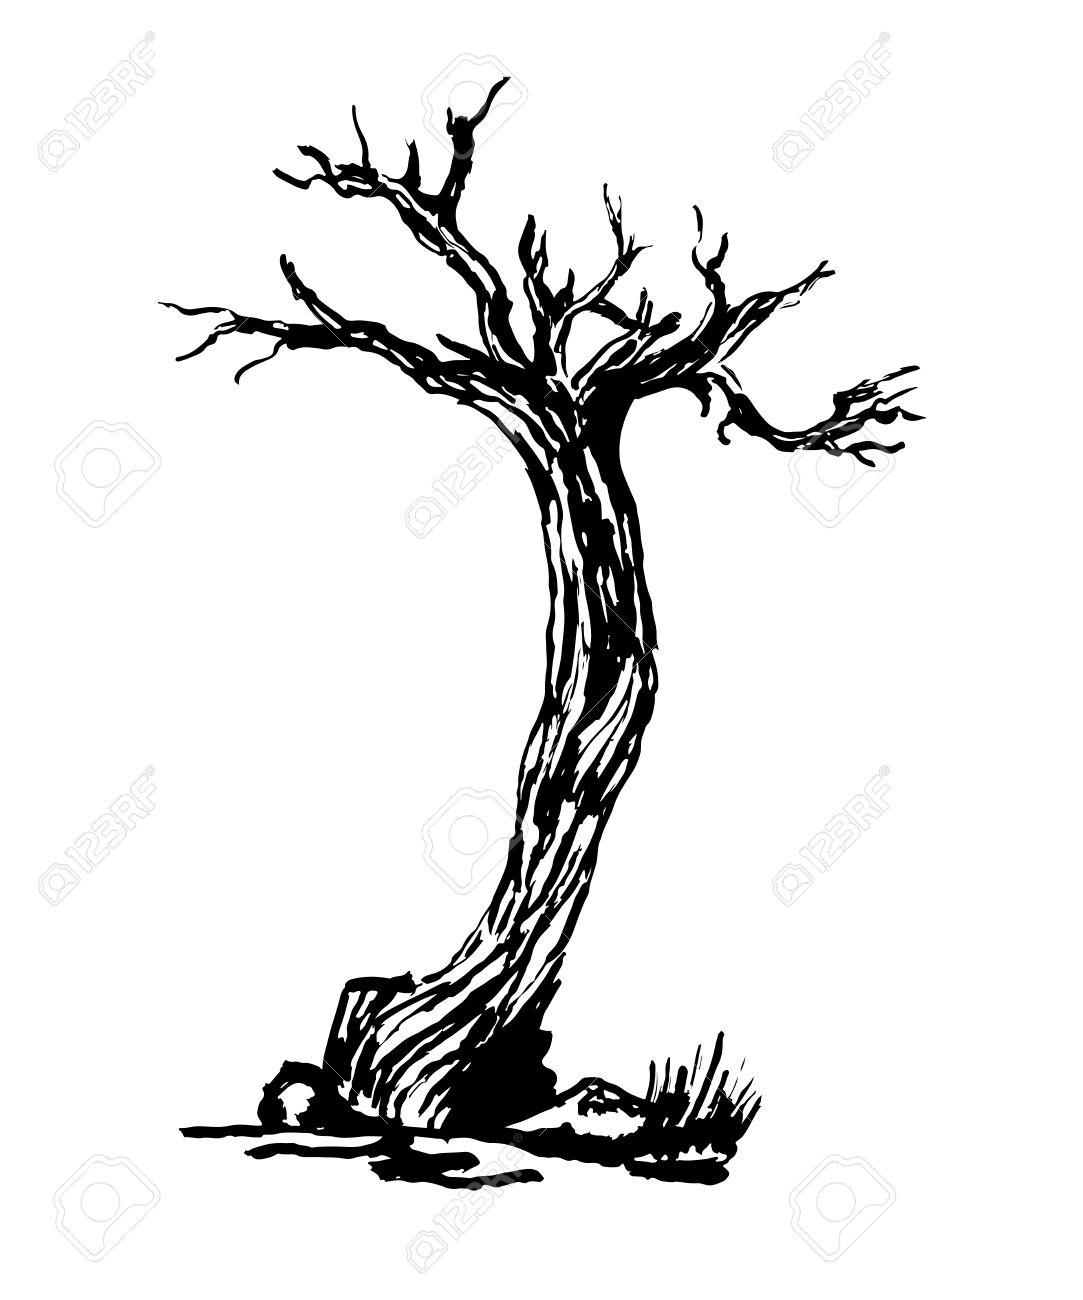 1083x1300 Drawing Old Dry Gnarled Tree Isolate Sketch Illustration Royalty